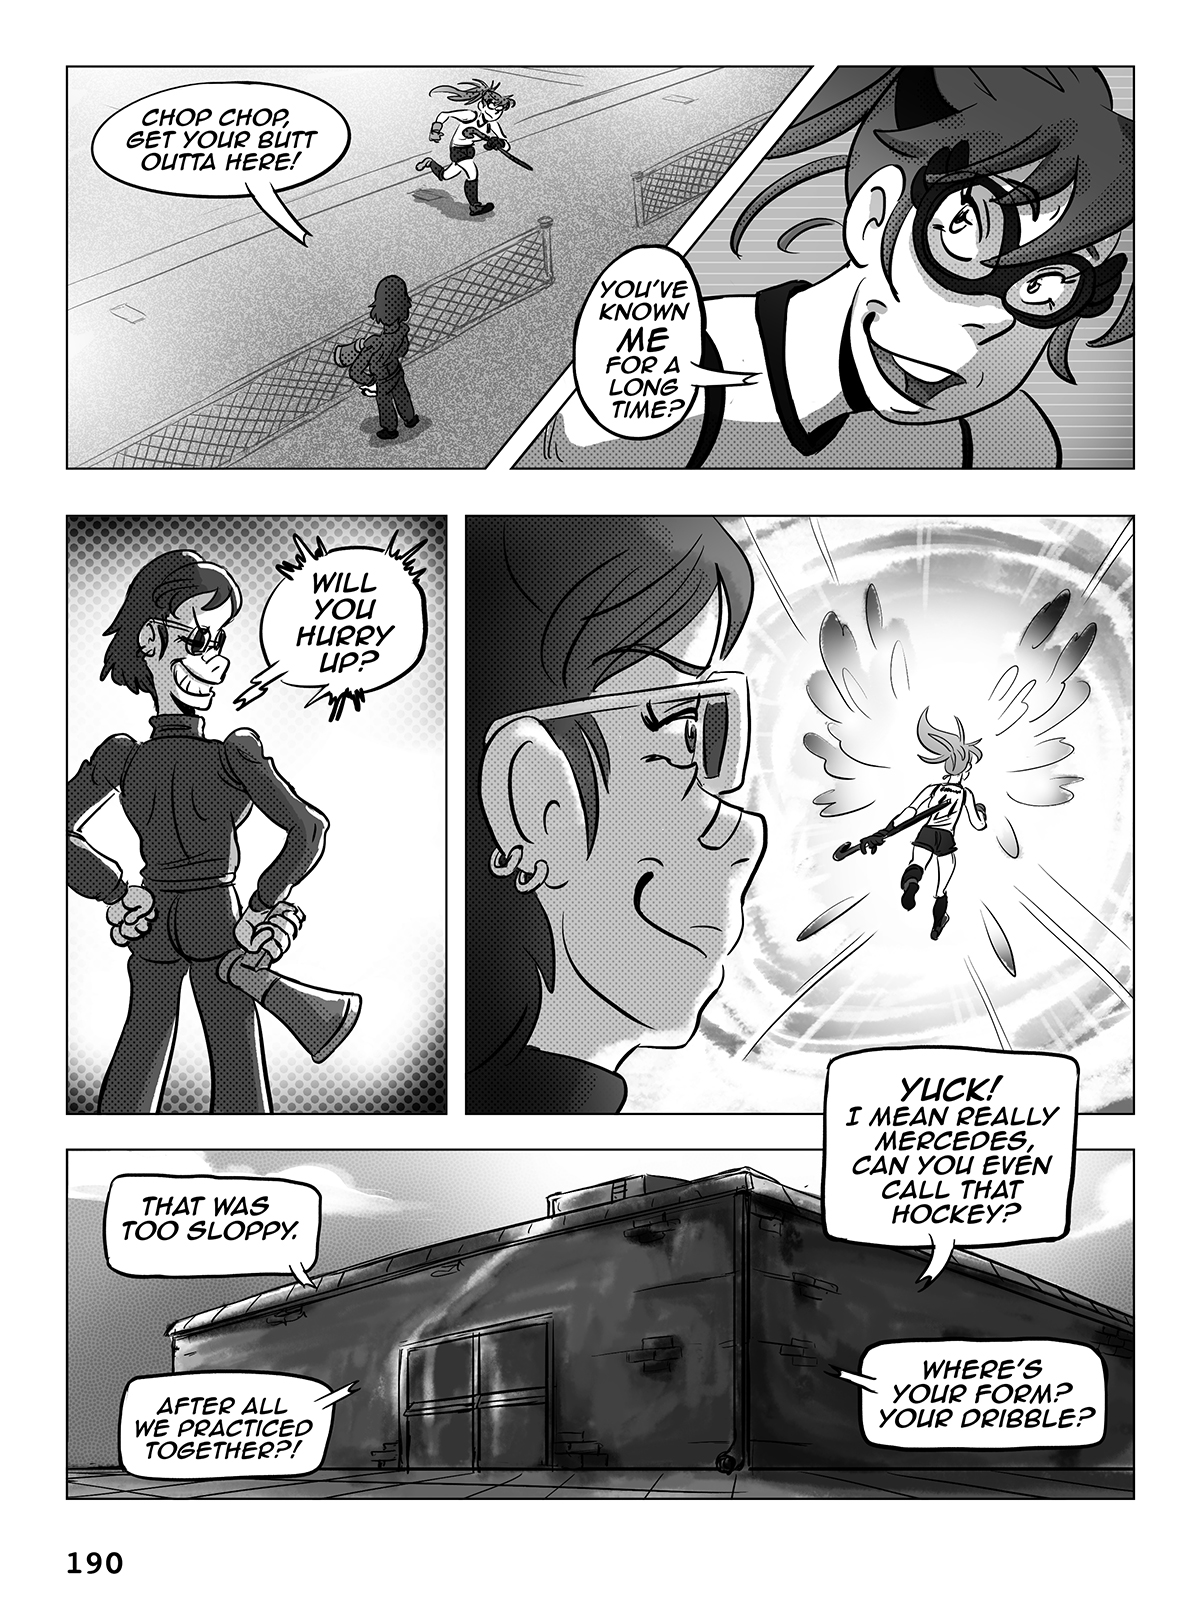 Hockey, Love, & GUTS! – Chapter 8 – Page 190